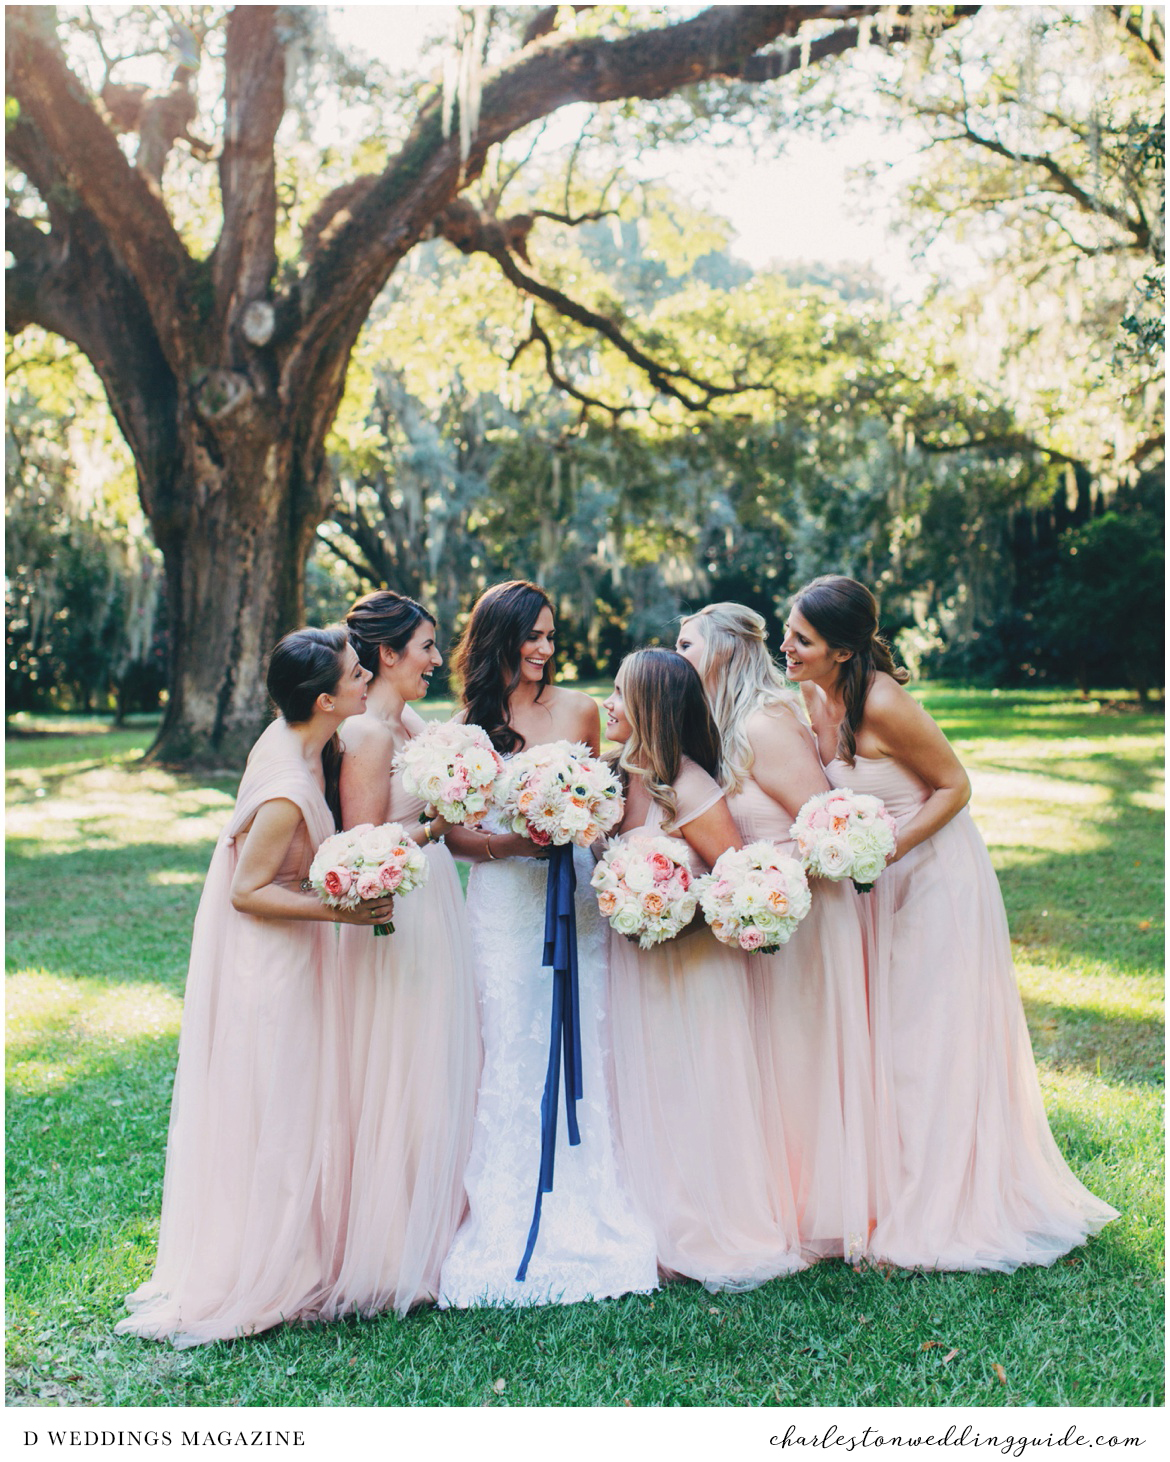 82d96e07729 Dreaming of a destination wedding in the Lowcountry  Request your free  Charleston Wedding Guide to discover the Charleston area s top wedding  vendors.